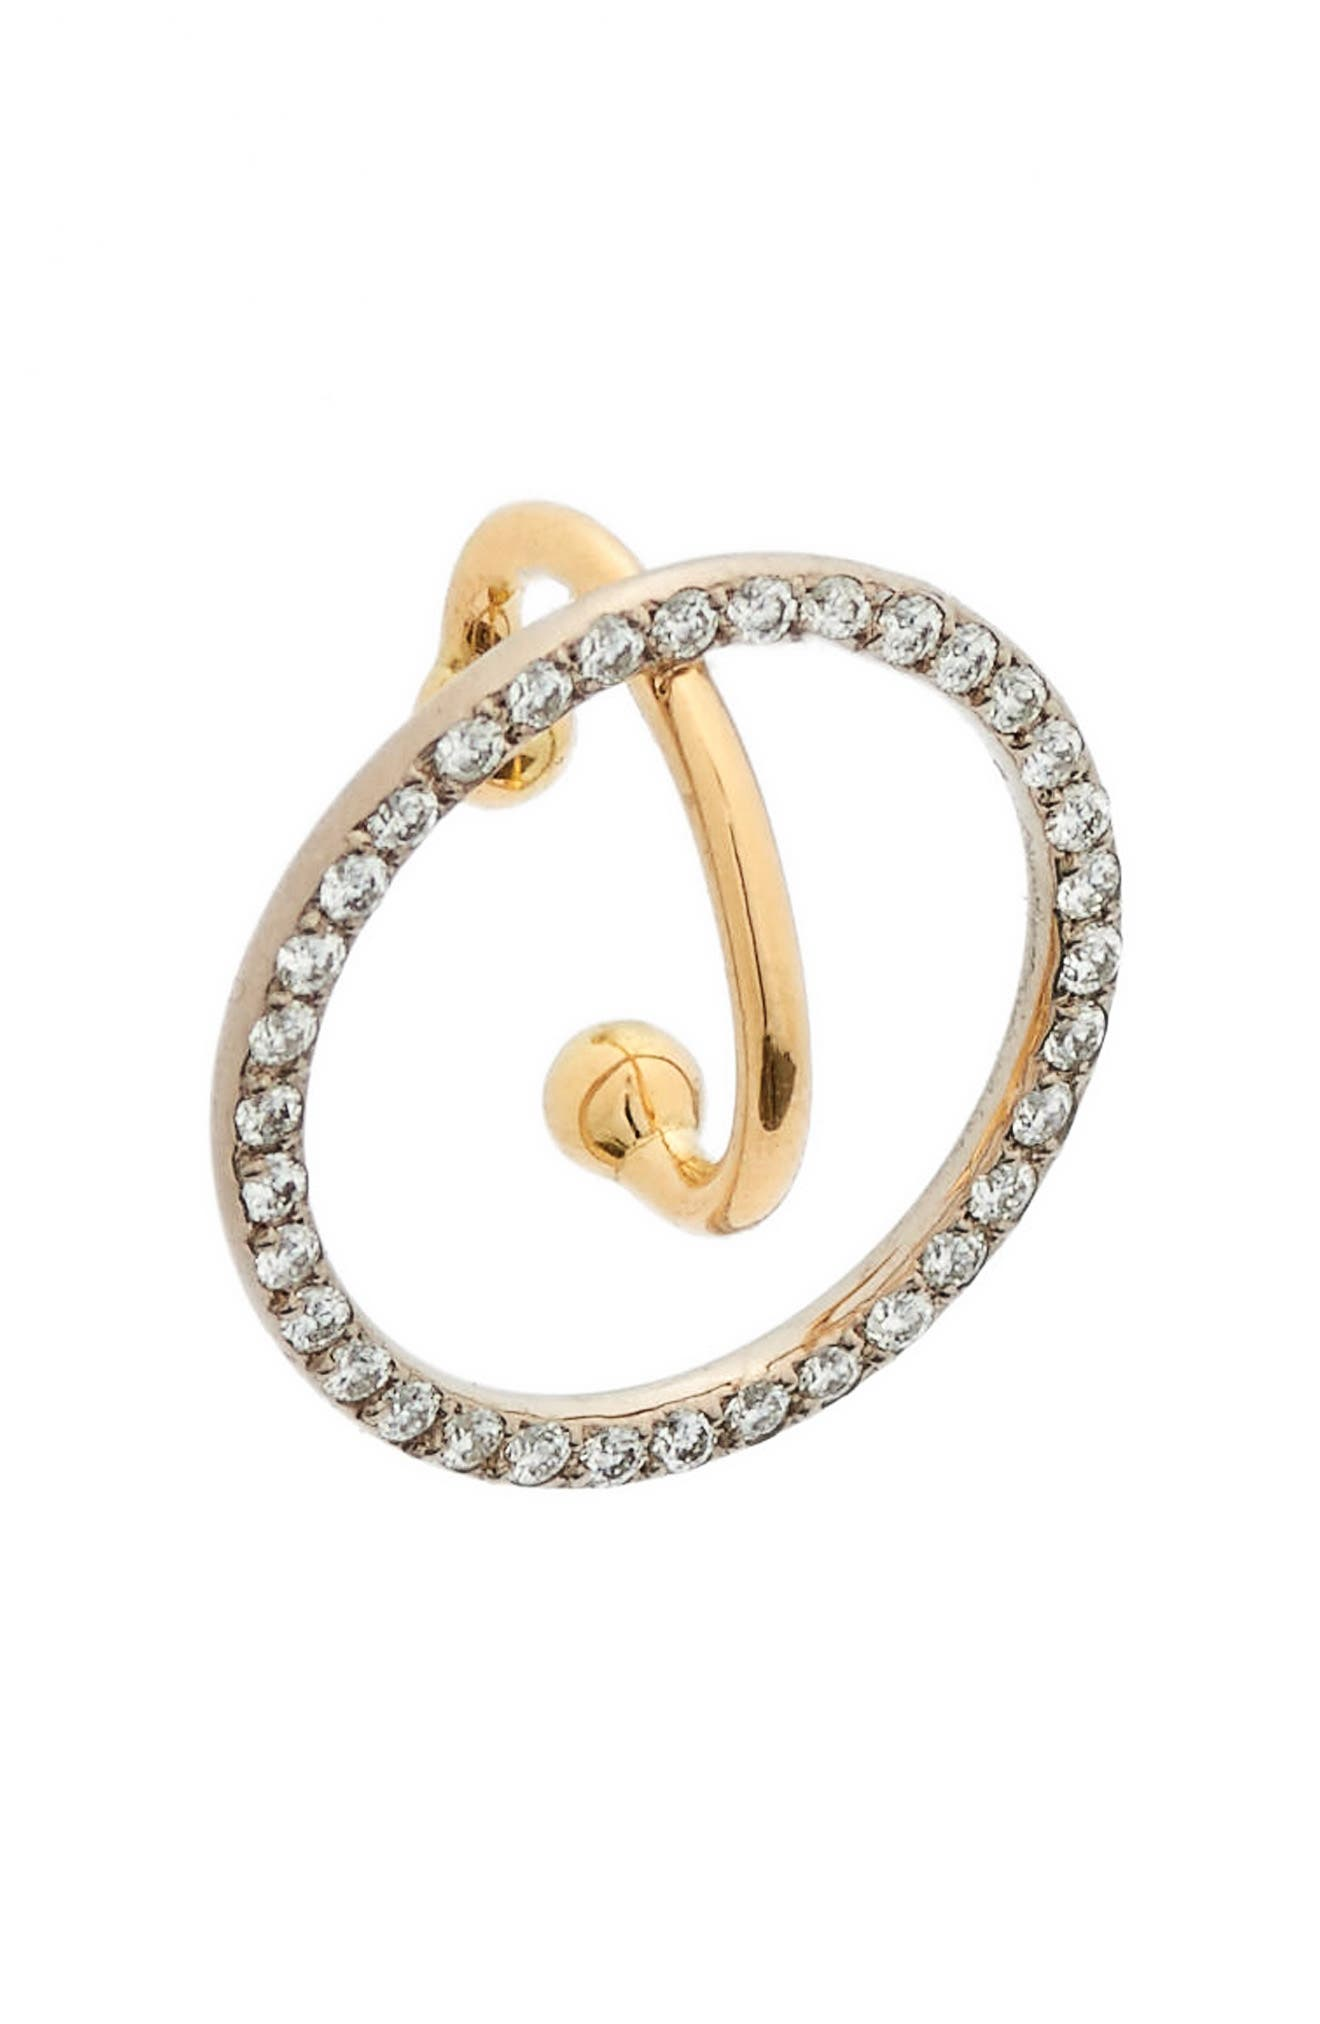 Celeste Diamond Earring,                             Main thumbnail 1, color,                             YELLOW WHITE GOLD DIAMONDS